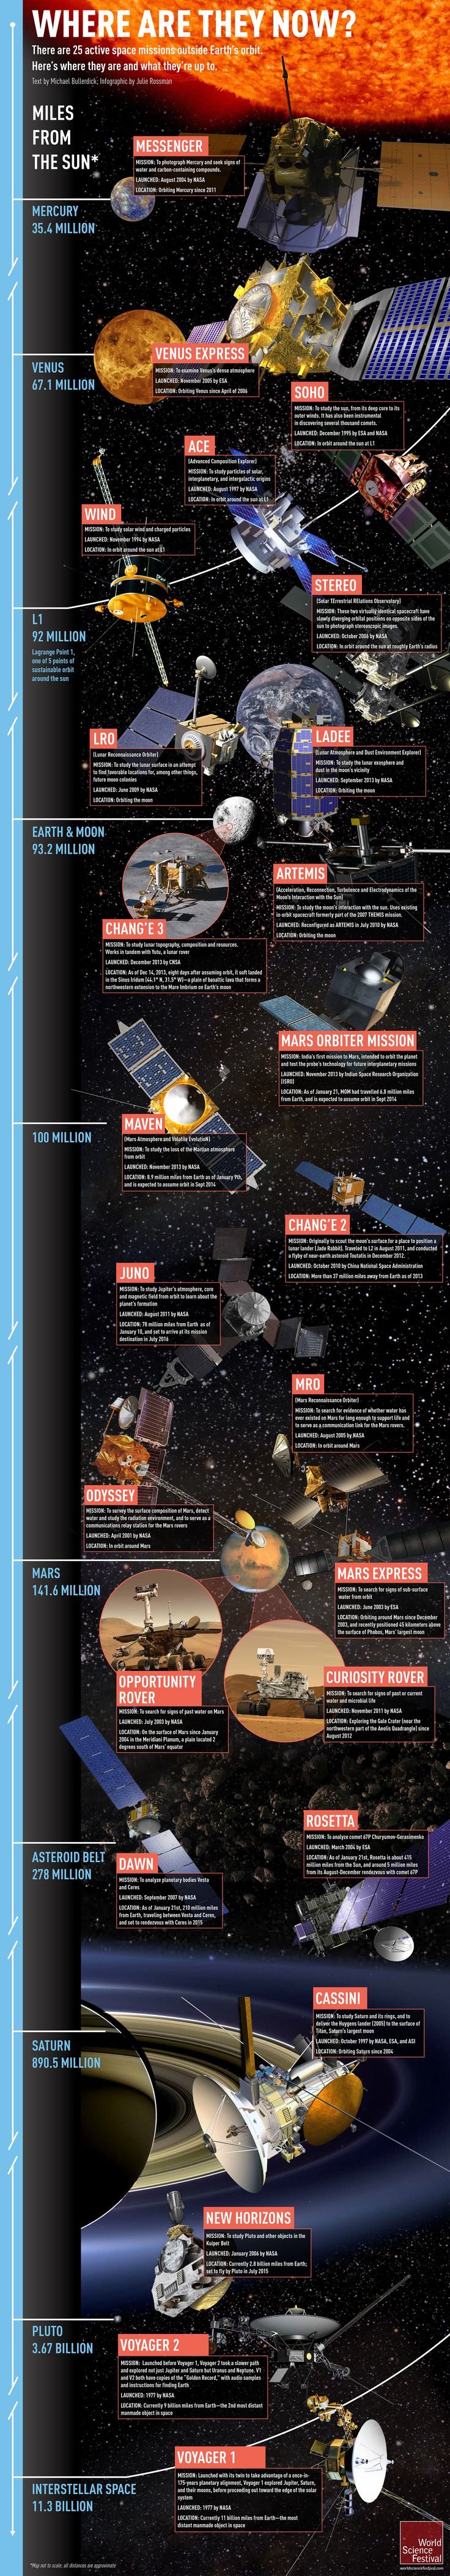 From twin satellites photographing the sun in 360° to rovers on Mars to a '70s-era probe passing out of the heliosphere and into interstellar space